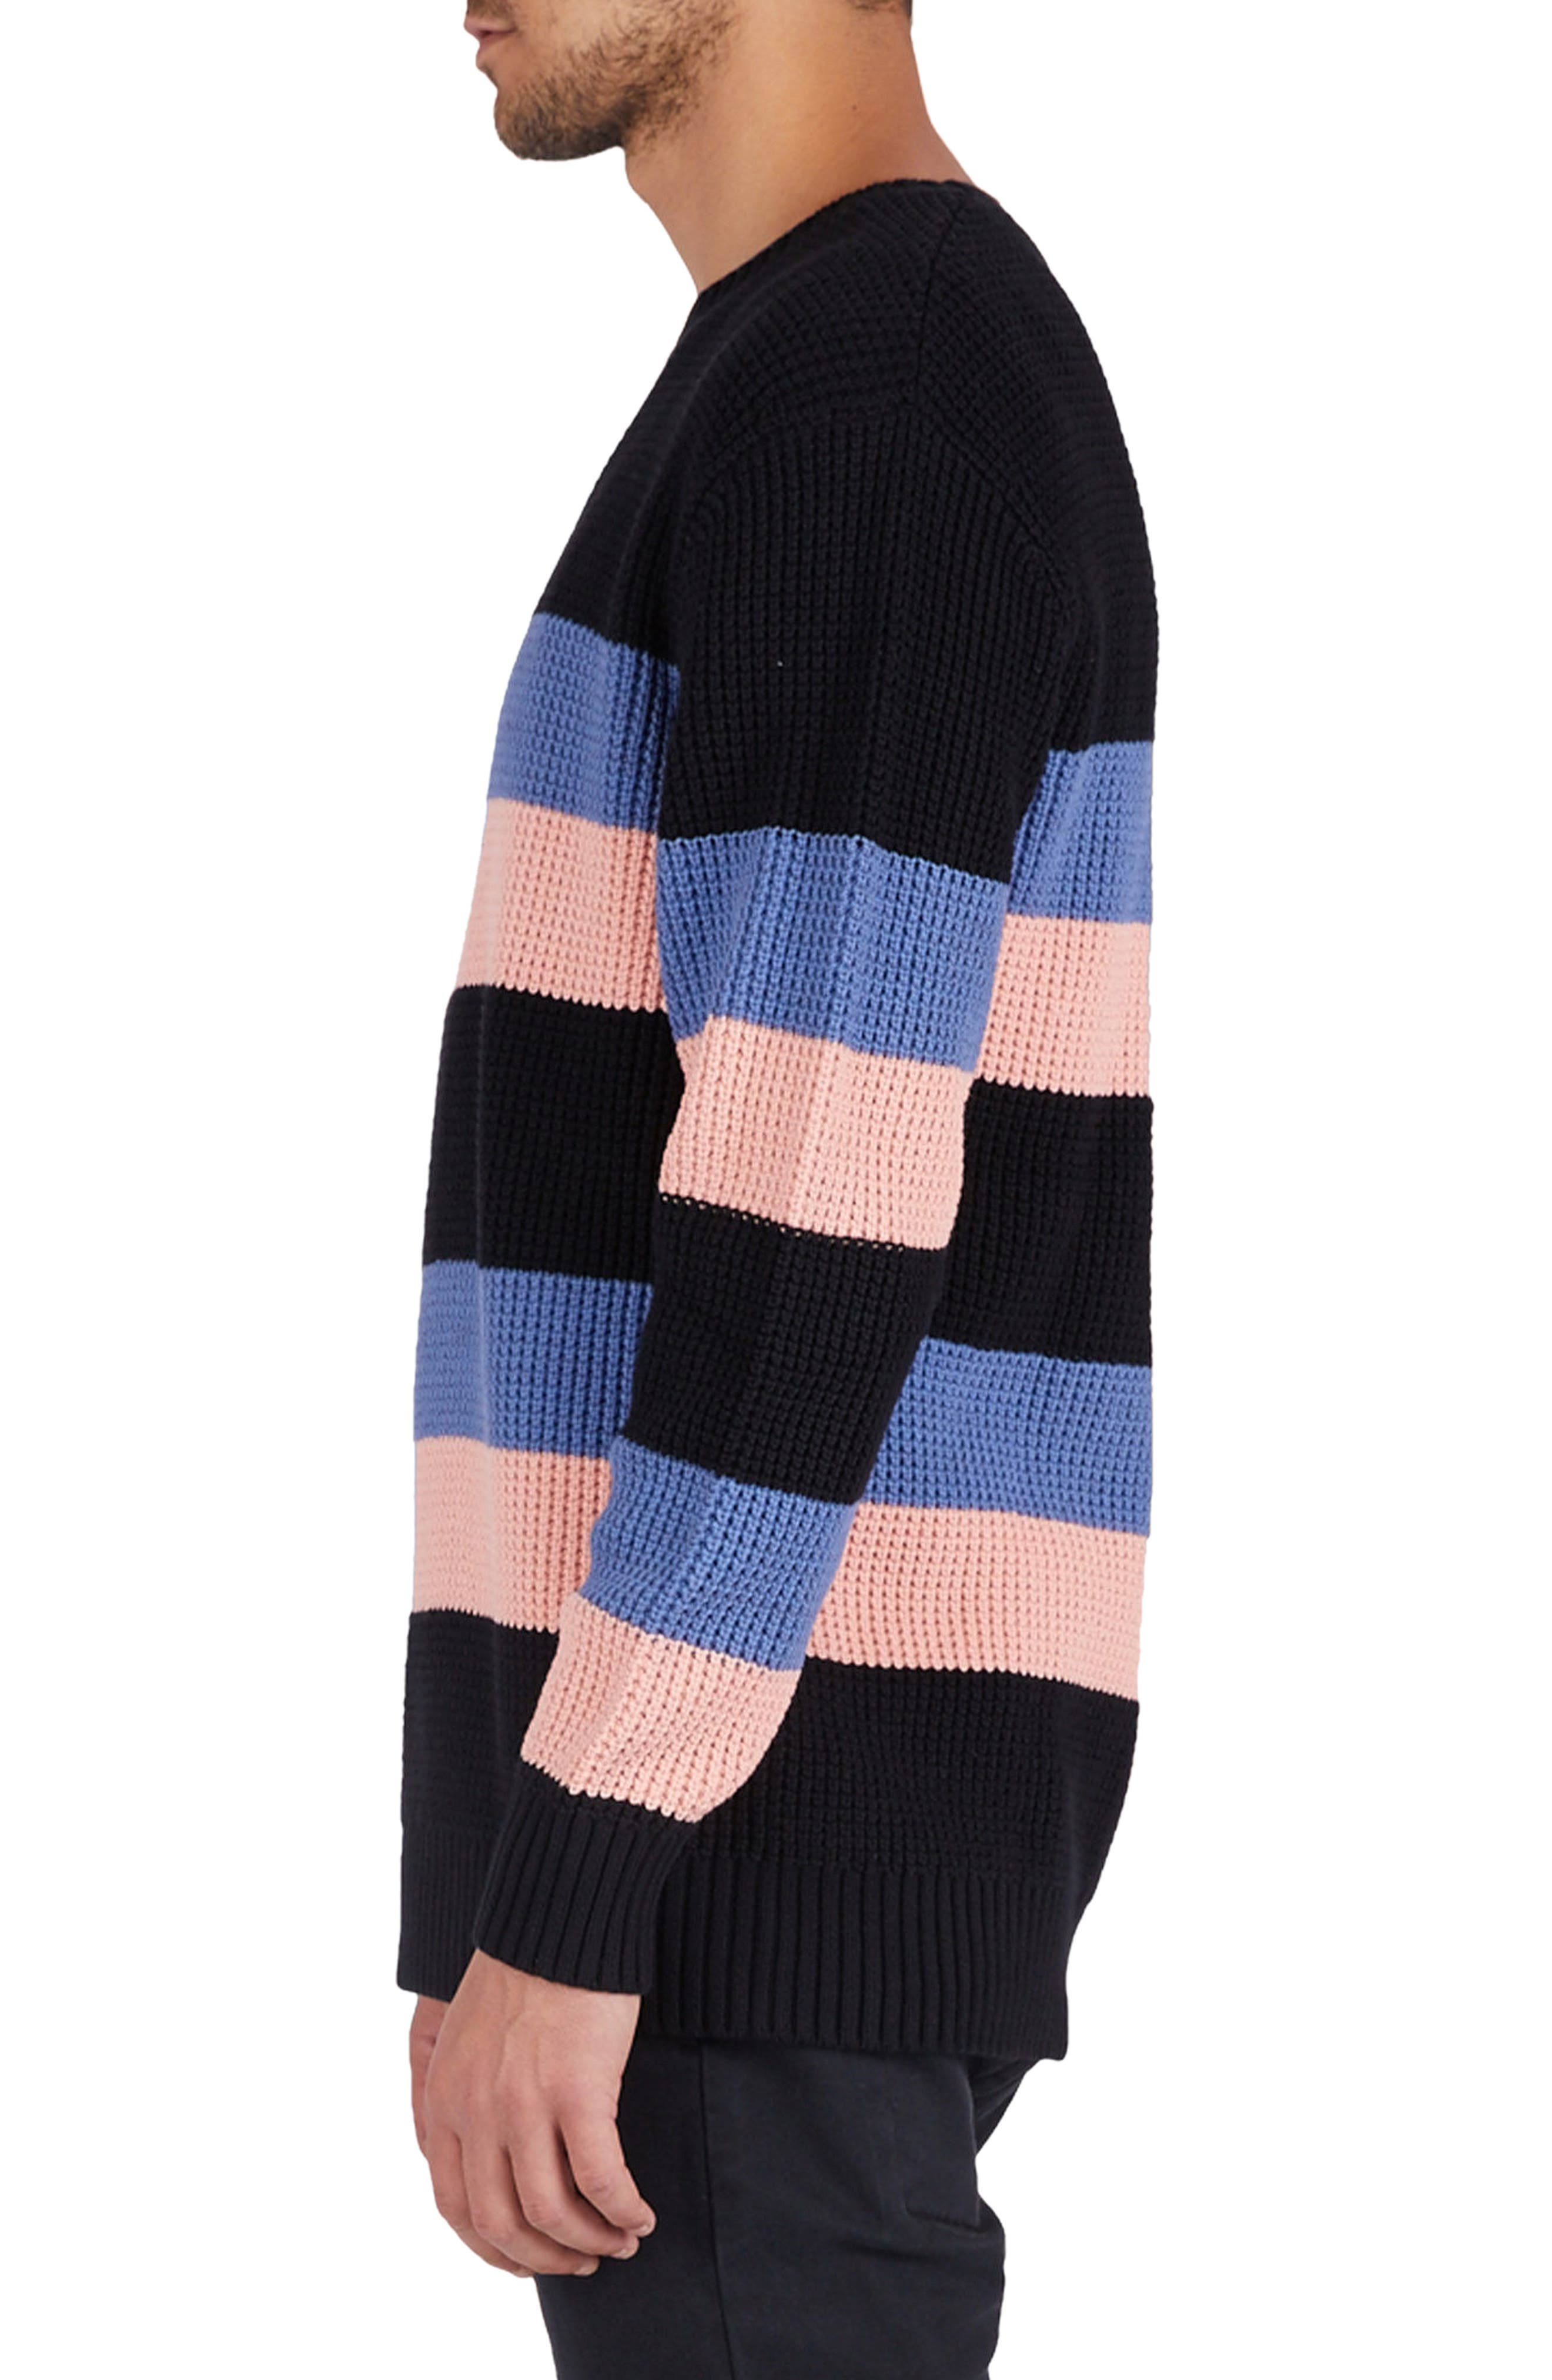 Rugby Stripe Sweater,                             Alternate thumbnail 4, color,                             Black/ Pink